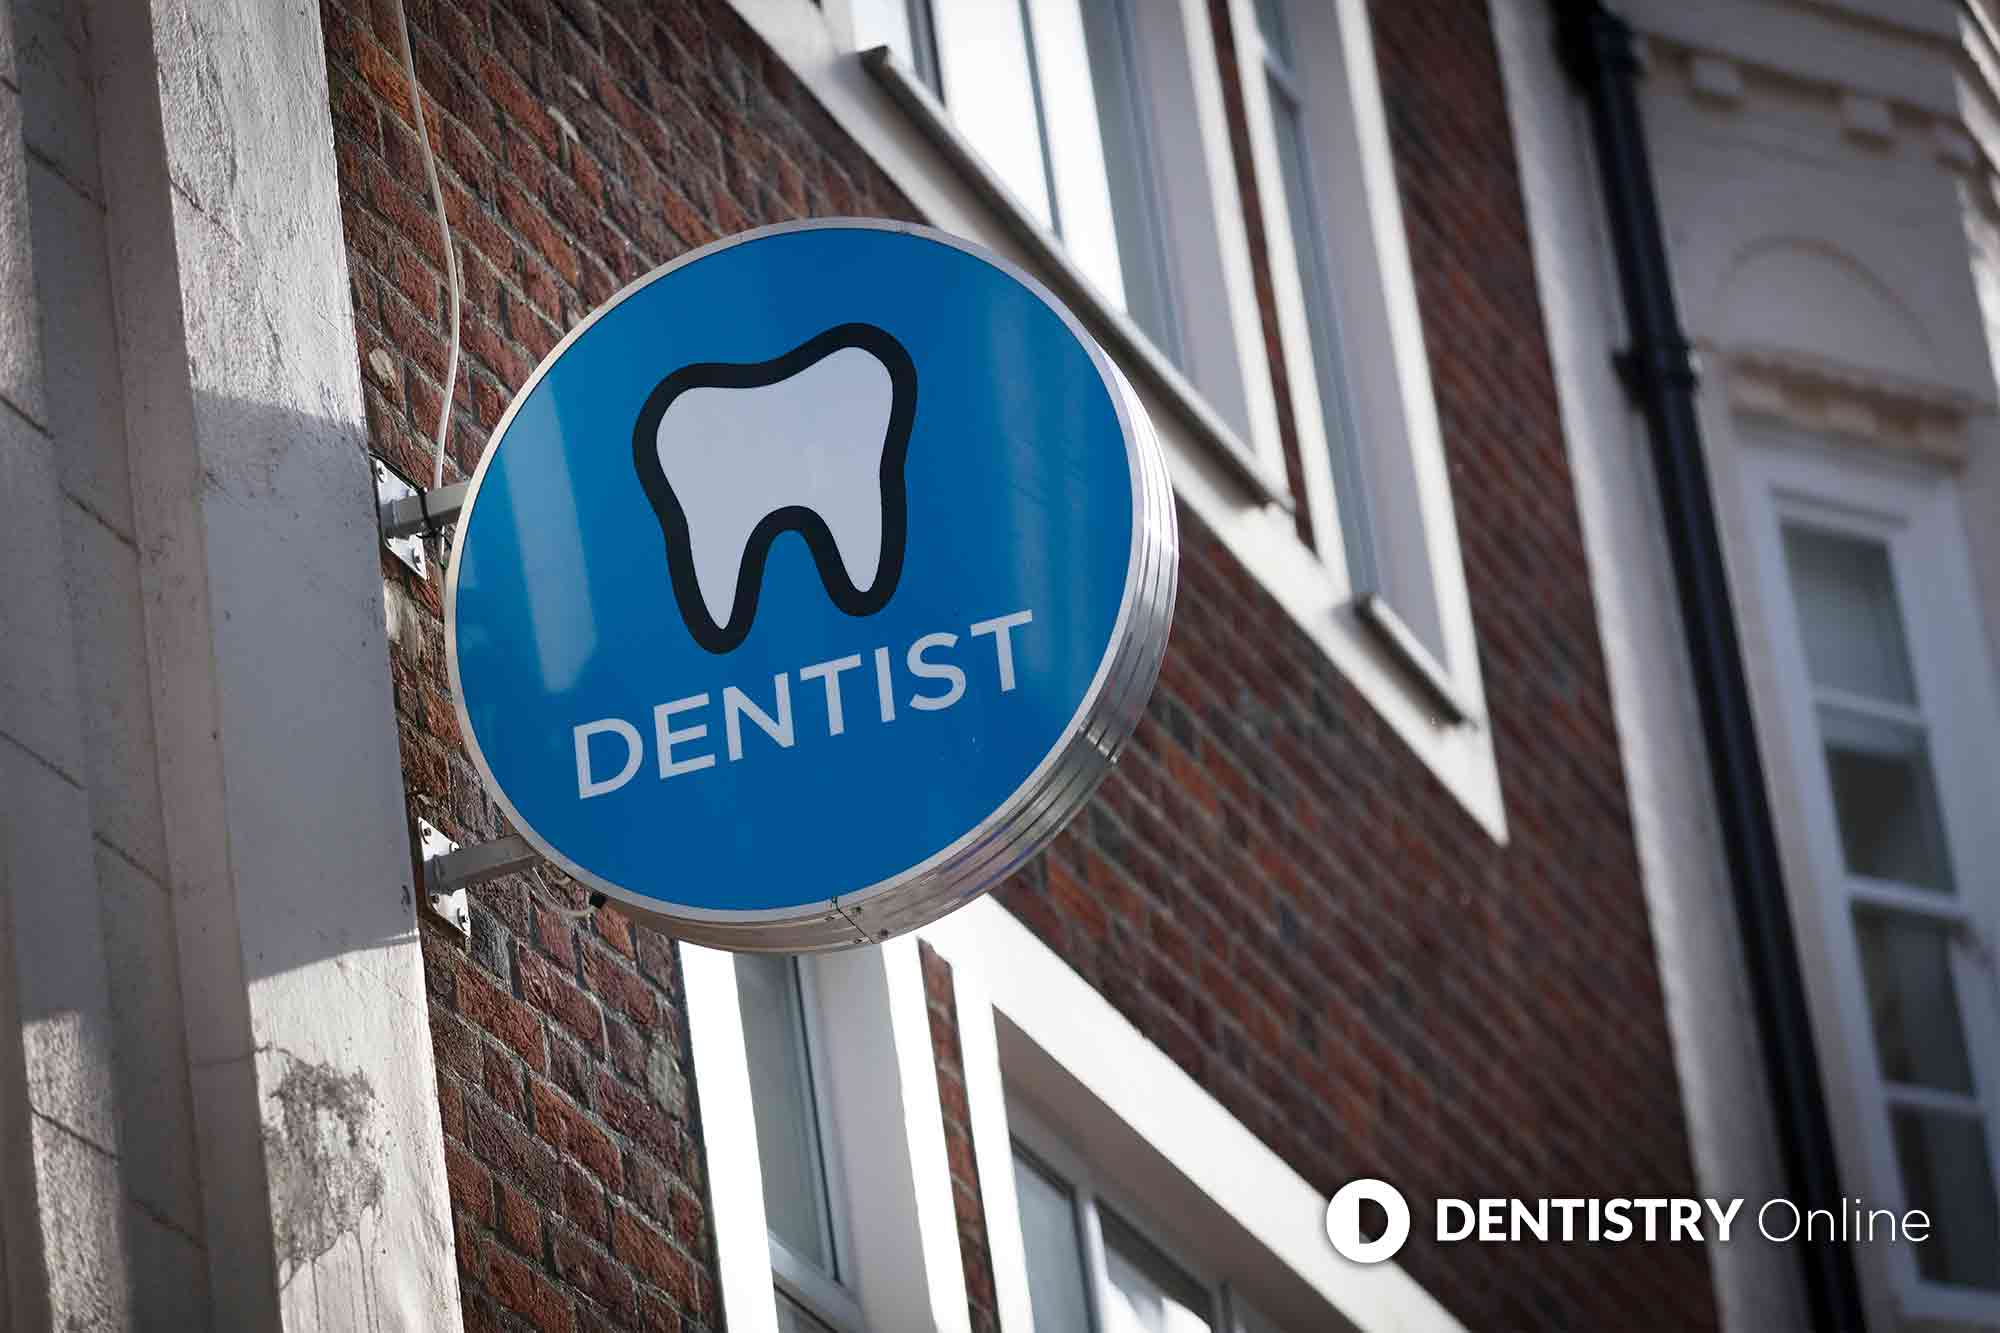 We speak to Anshul and Aarti Kapoor about buying a dental practice during lockdown and how the journey has been so far